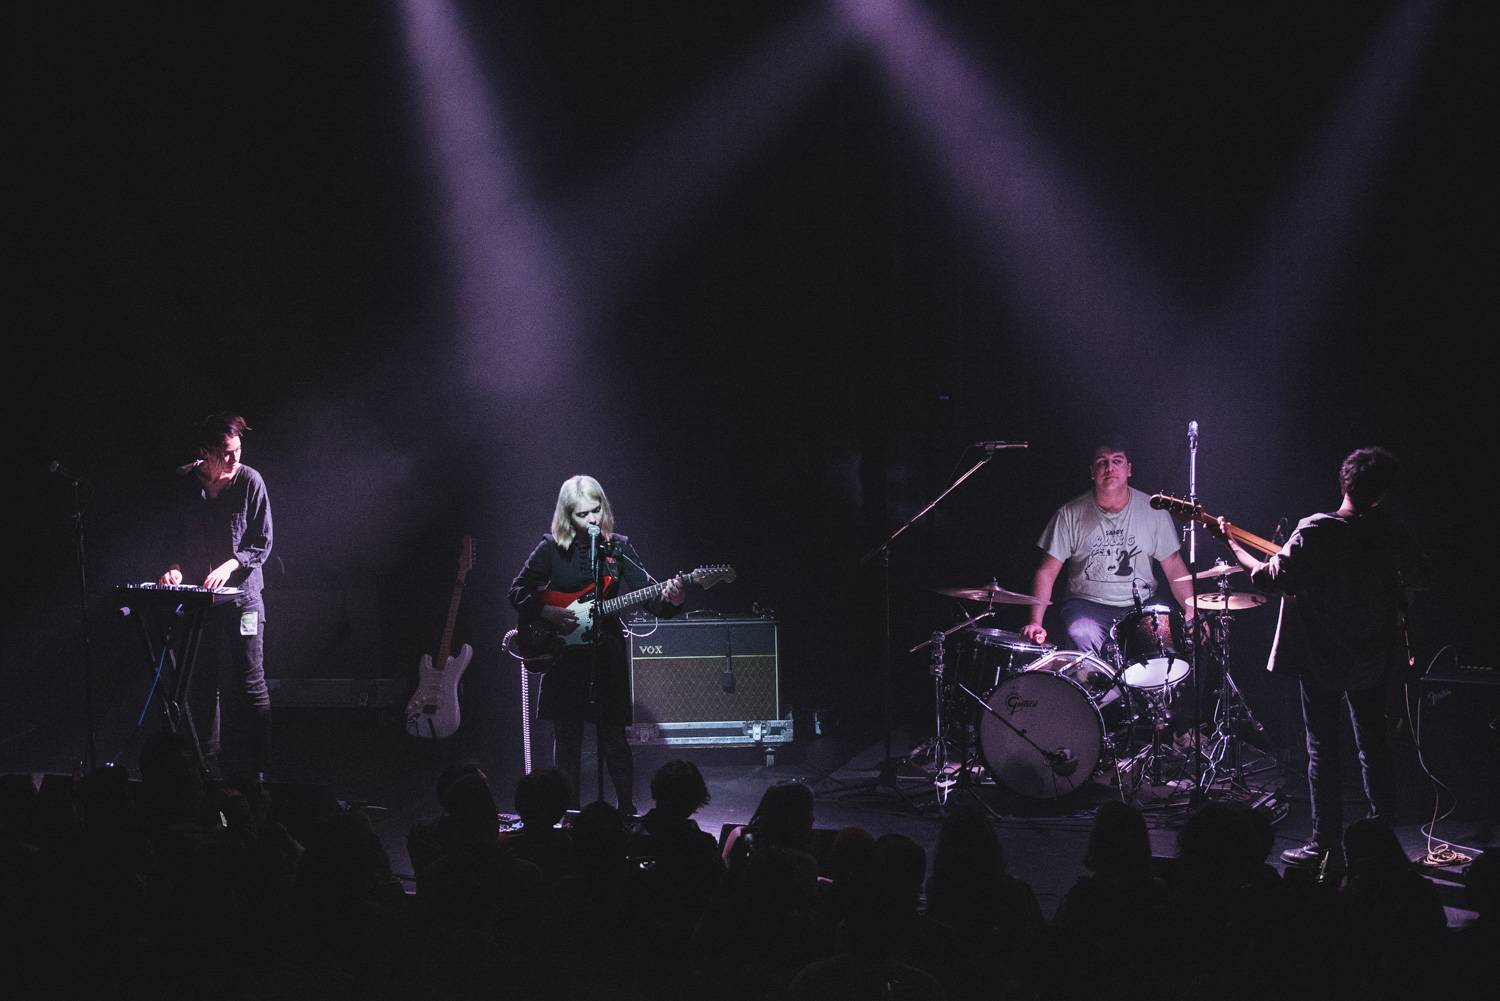 Snail Mail at the Imperial, Vancouver, Jan 27 2019. Pavel Boiko photo.